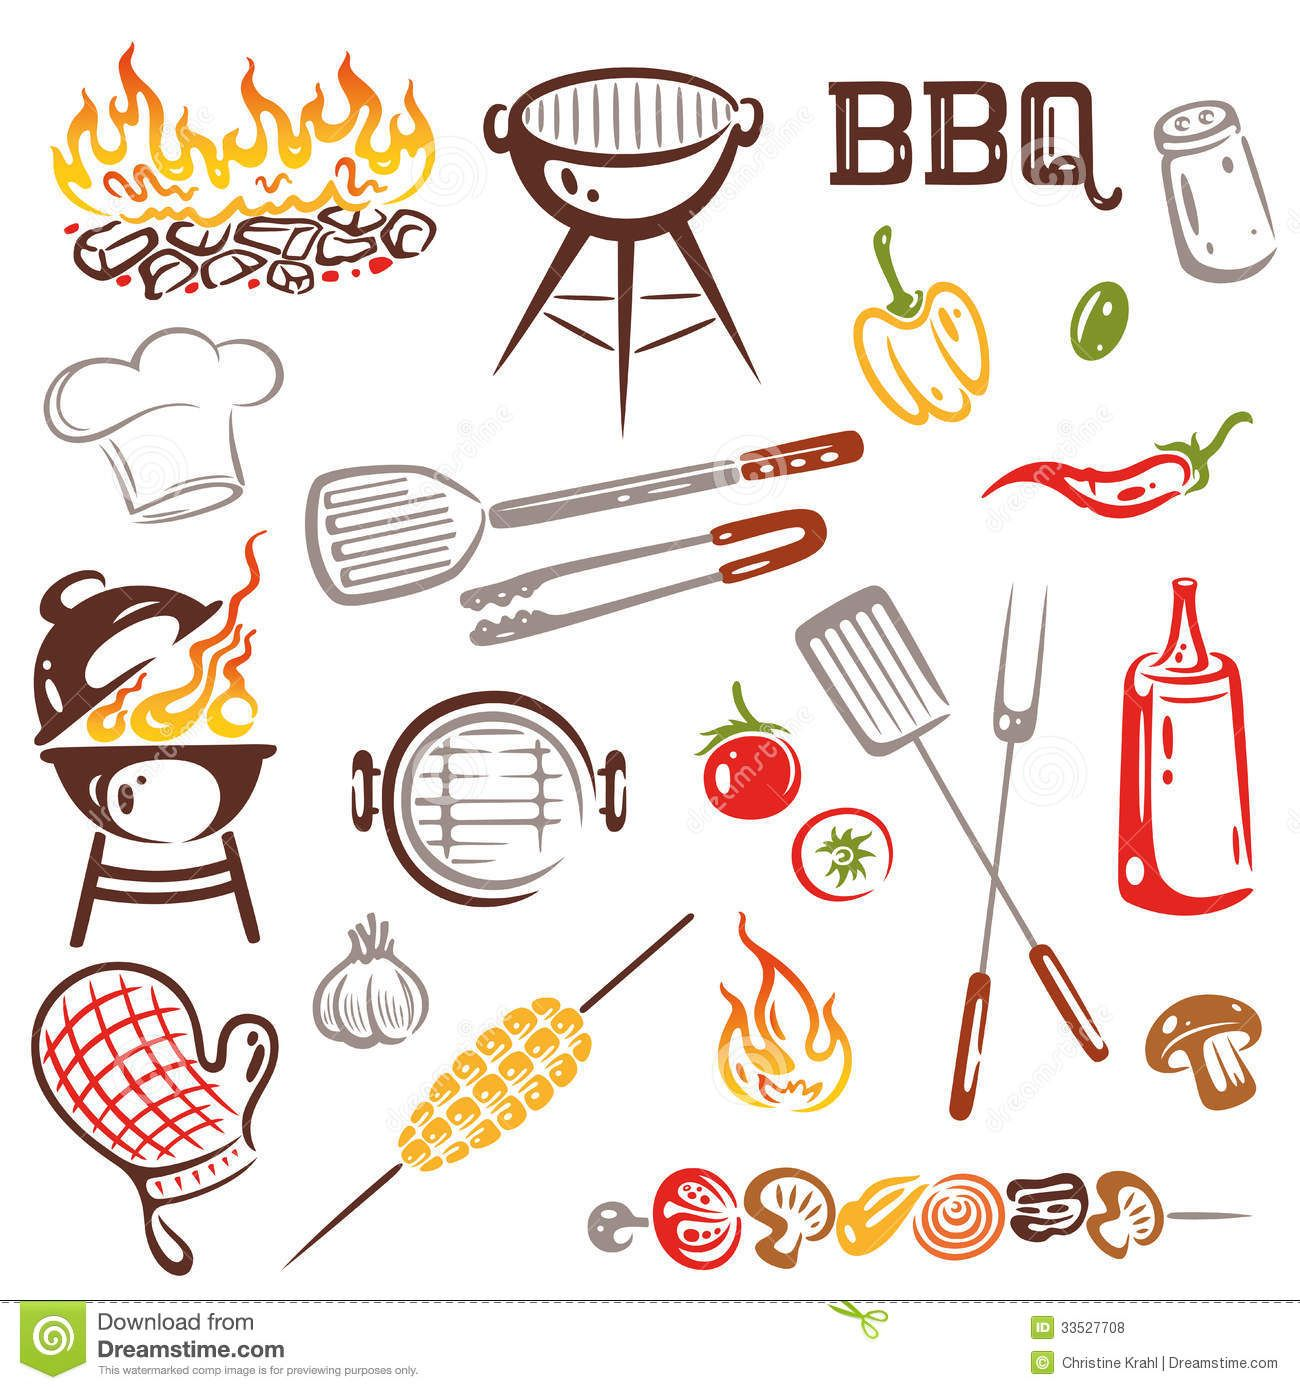 barbecue clipart free.